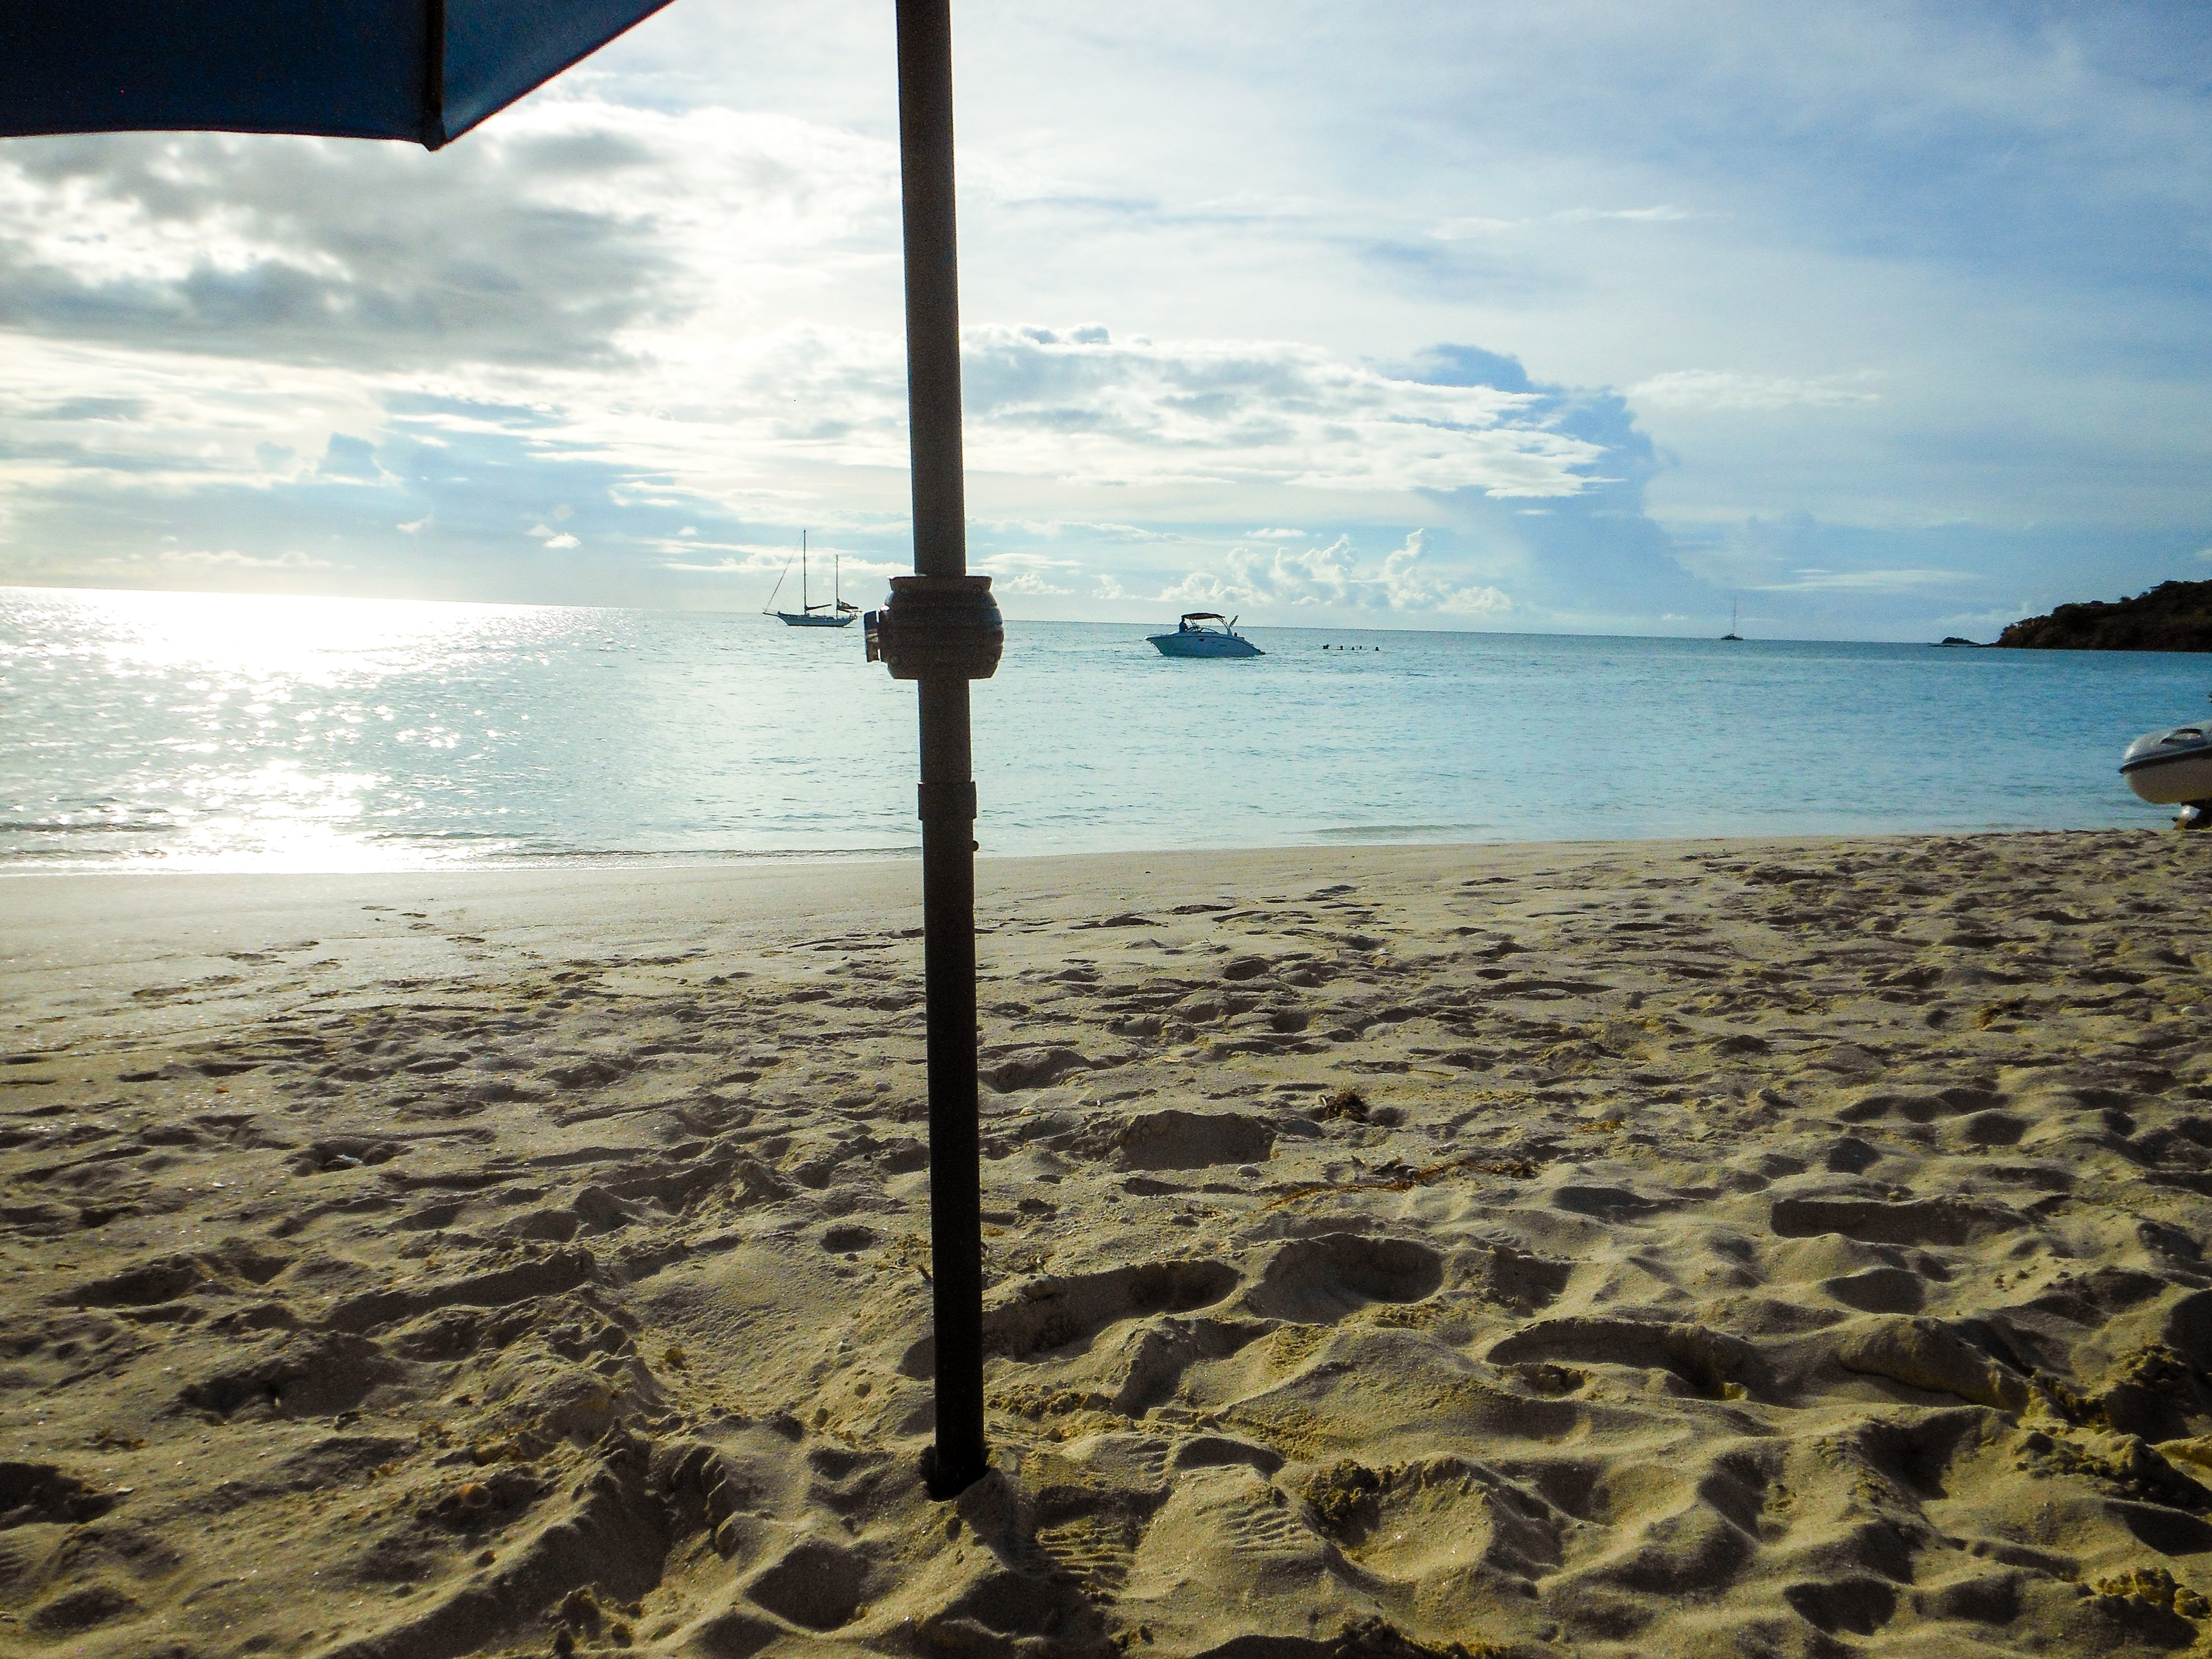 bucket list beaches you've got to see - Antigua www.majeang.com